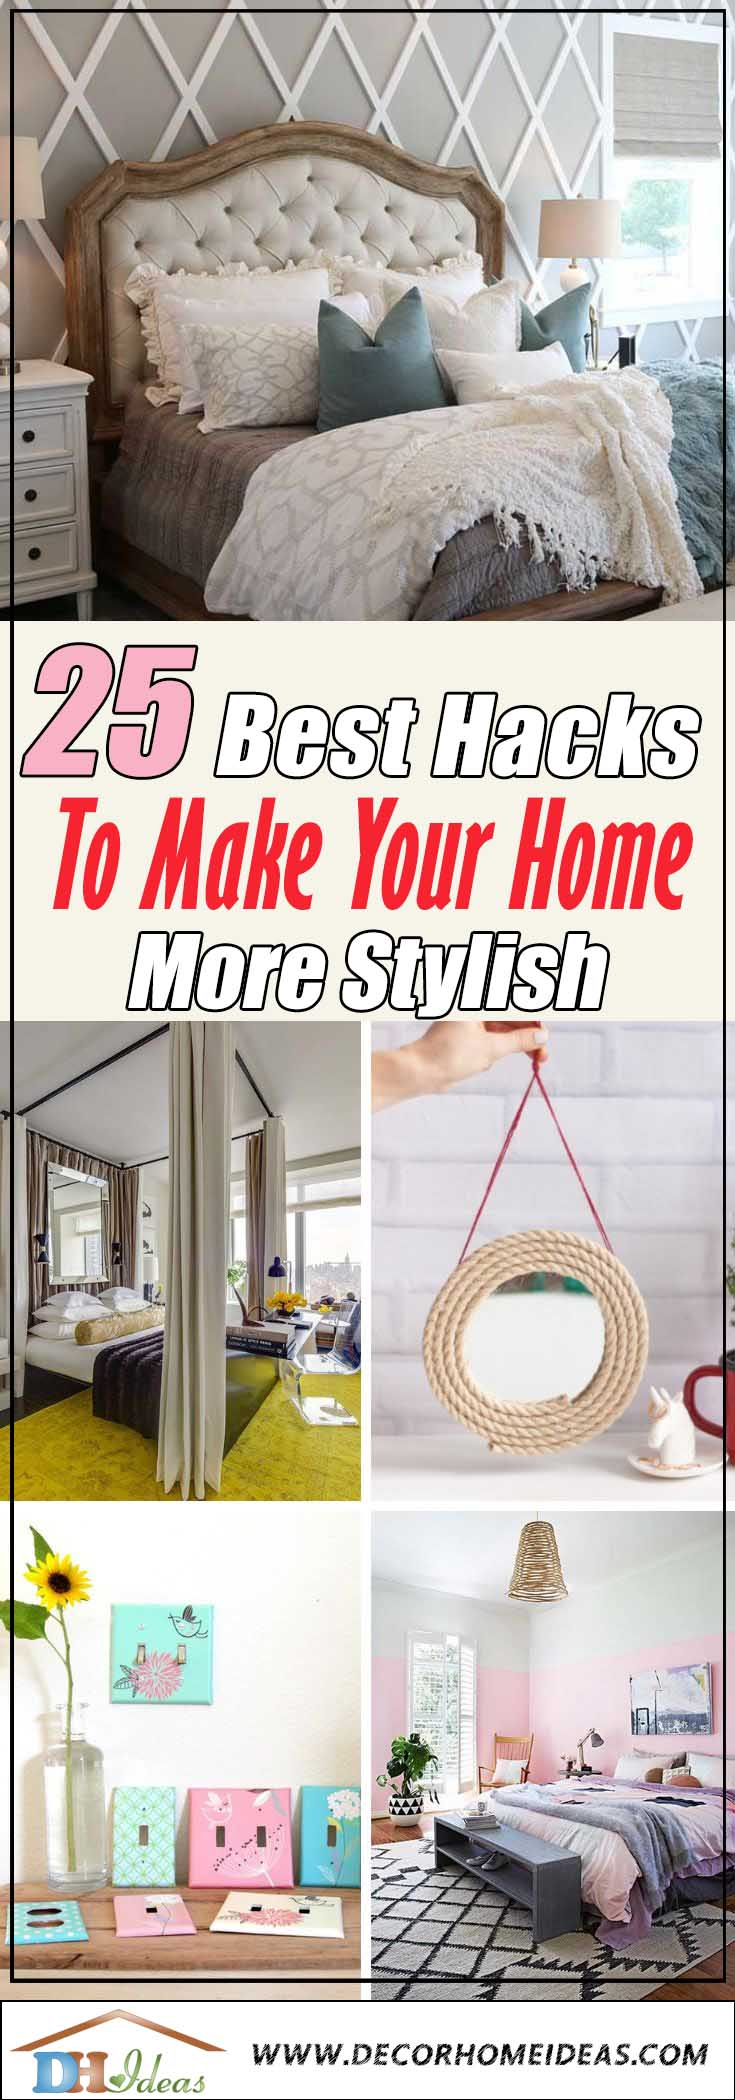 Home Hacks To Make Your Home More Stylish